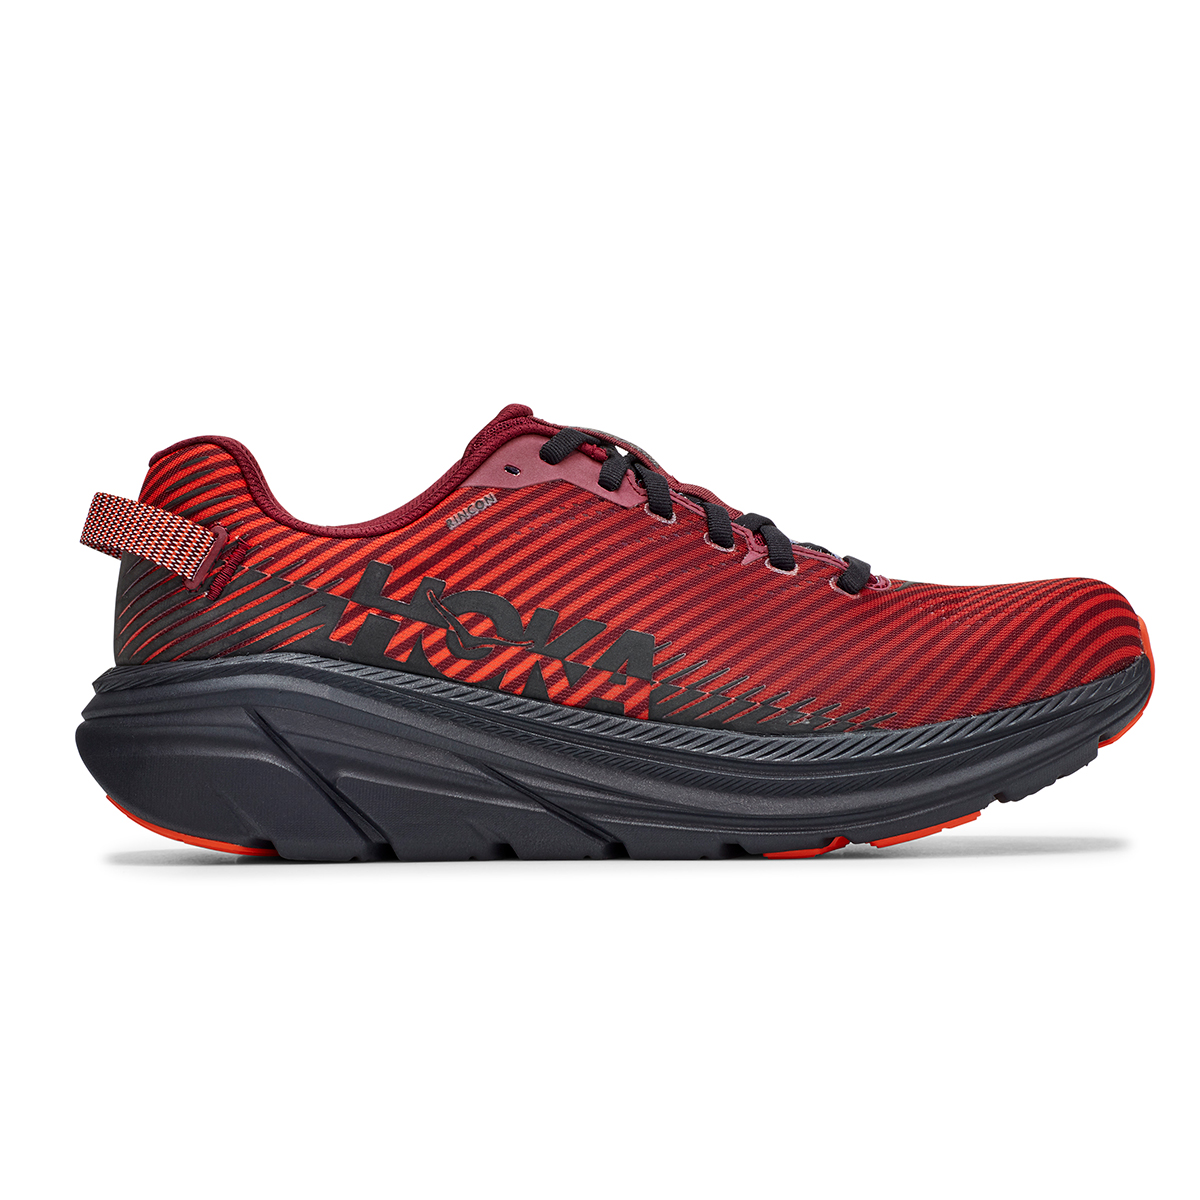 Men's Hoka One One Rincon 2 Running Shoe - Color: Cordovan/Anthracite - Size: 7 - Width: Regular, Cordovan/Anthracite, large, image 1